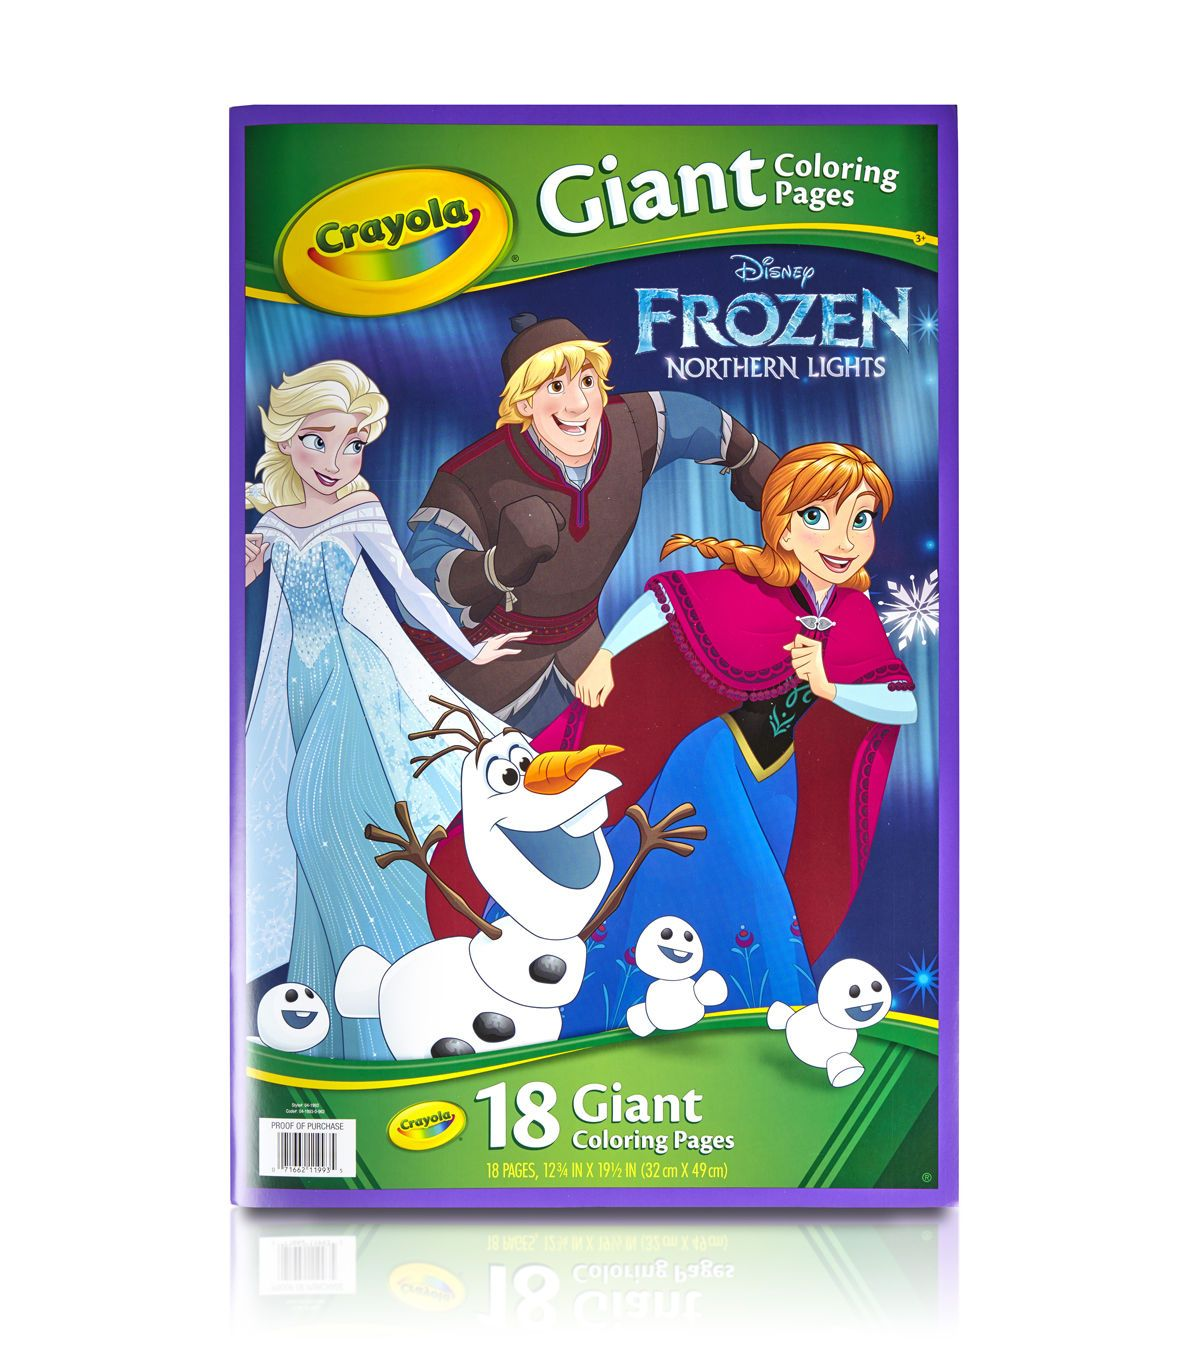 Crayola Giant Disney Coloring Book 12 75 X19 7 16 18pg Frozen Joann Coloring Books Kids Coloring Books Frozen Coloring Pages